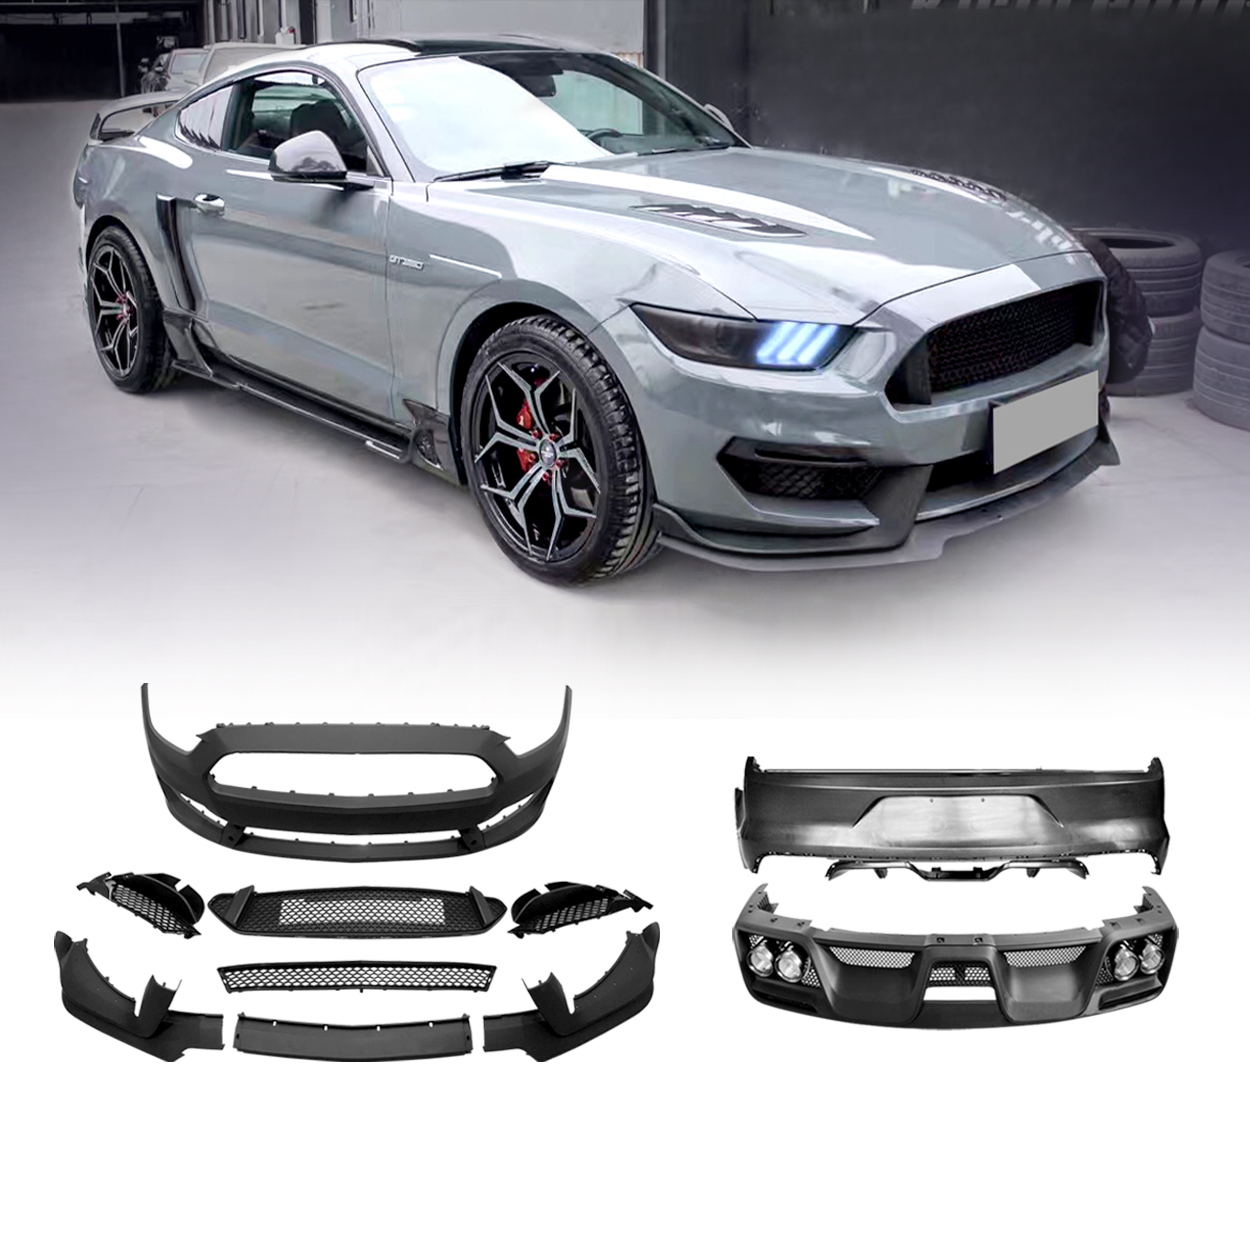 15-17 Ford Mustang GT350 Style Body Kit Front Rear Bumper